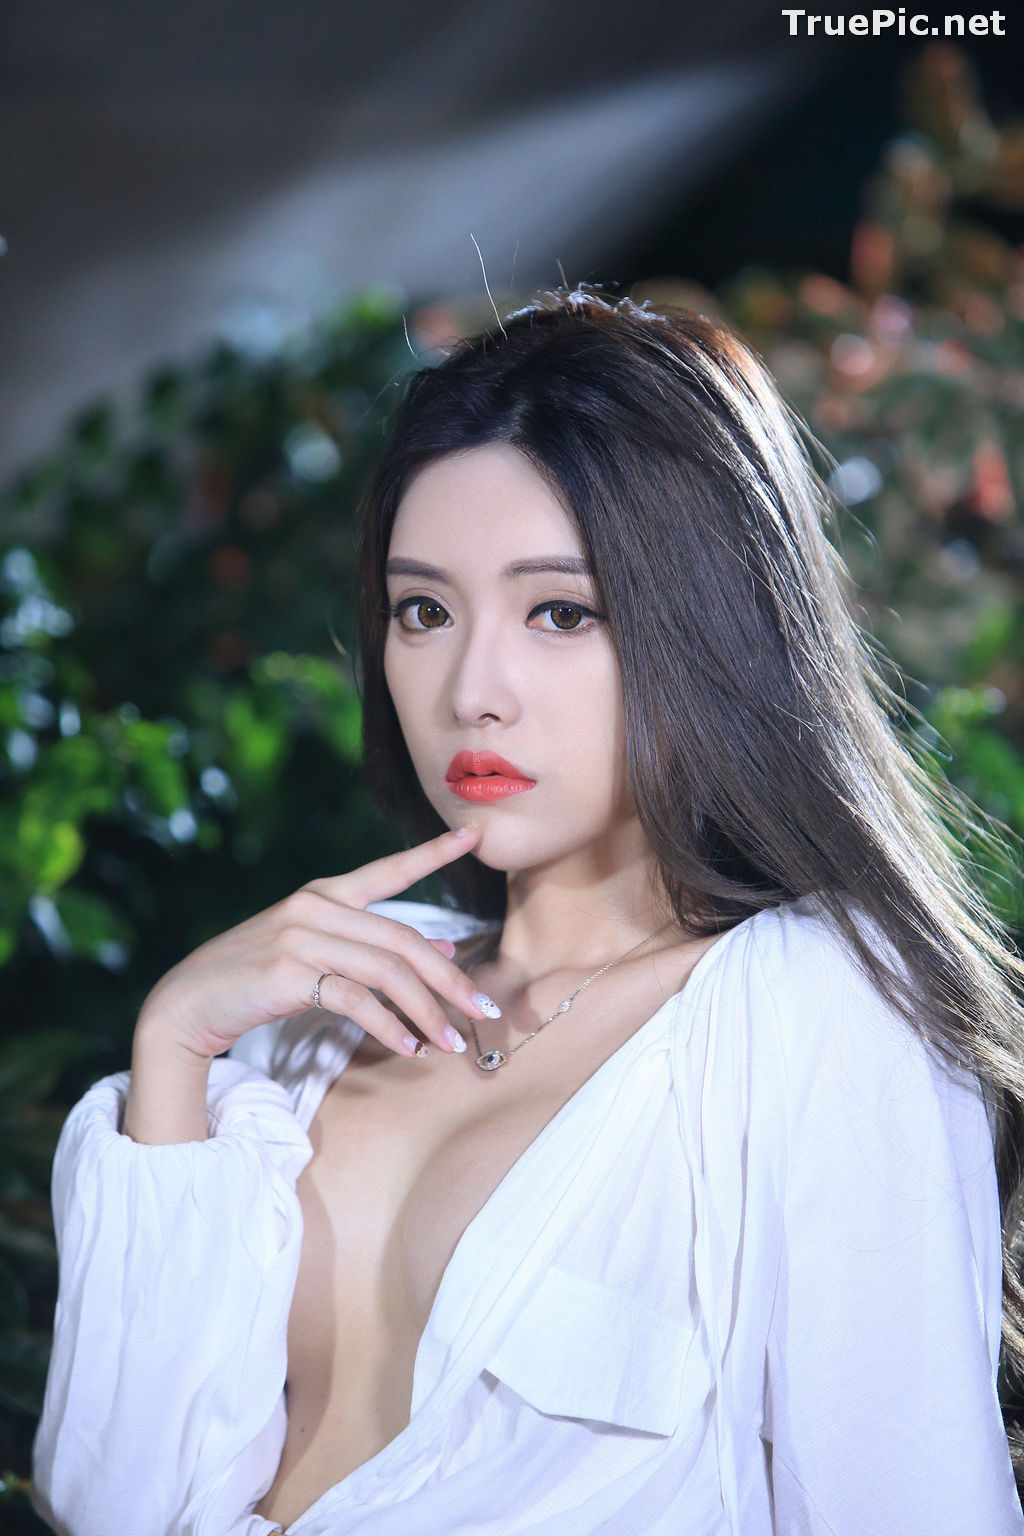 Image Taiwanese Model – 莊舒潔 (ViVi) – Sexy and Pure Baby In Night - TruePic.net - Picture-81